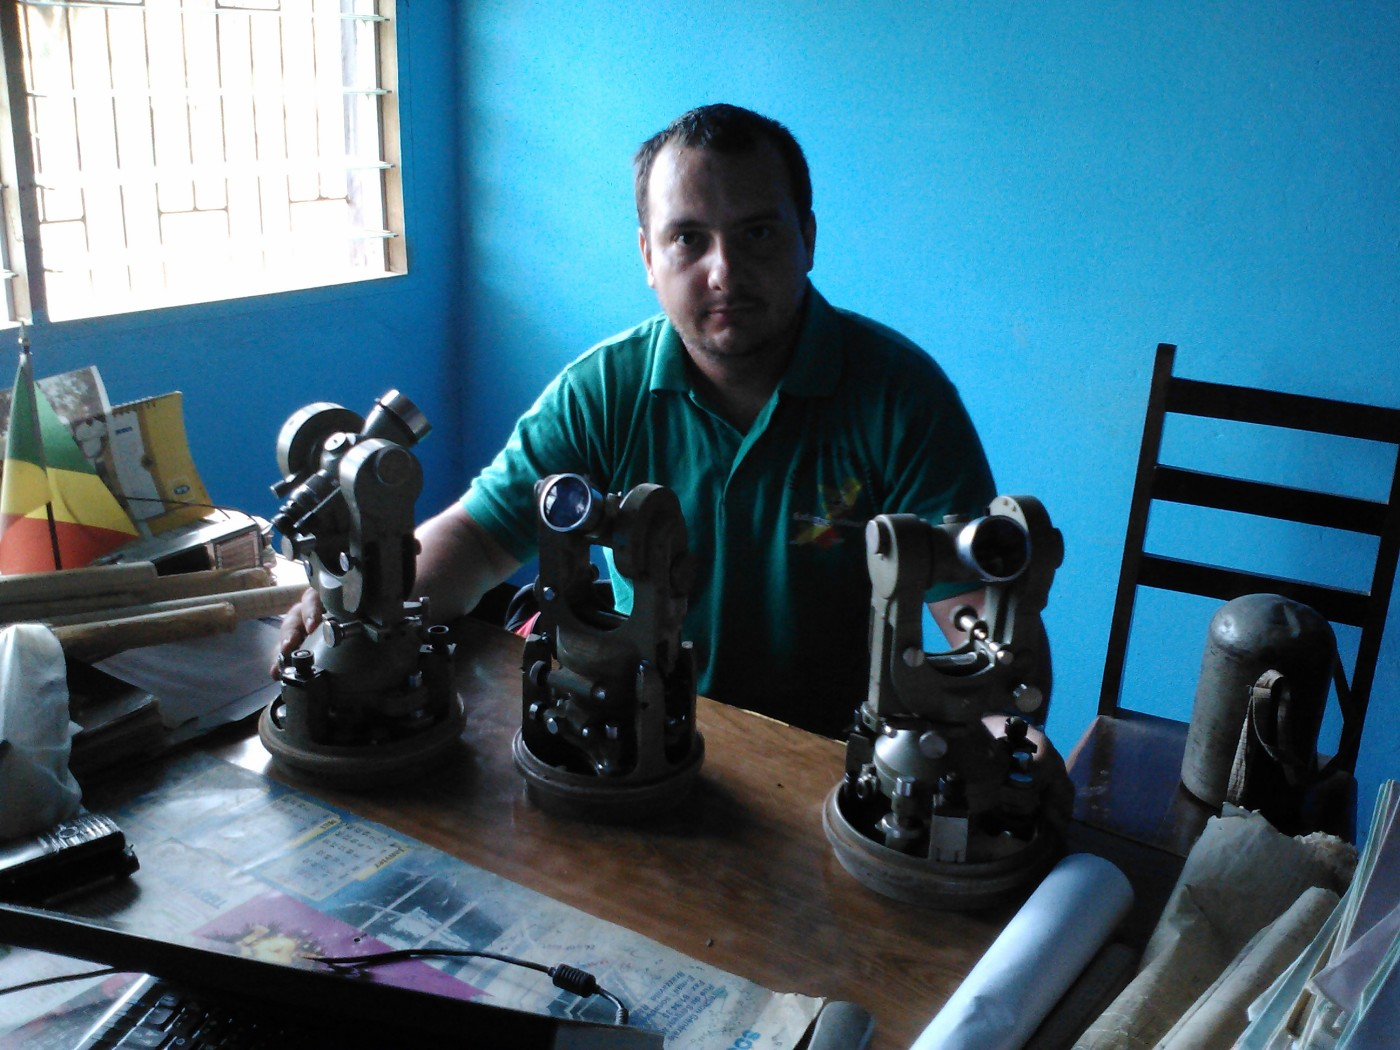 Me and the 2 Theodolites Wild T2 and T1A - in the Cadaster Offices of Nkayi in The Republic of Congo